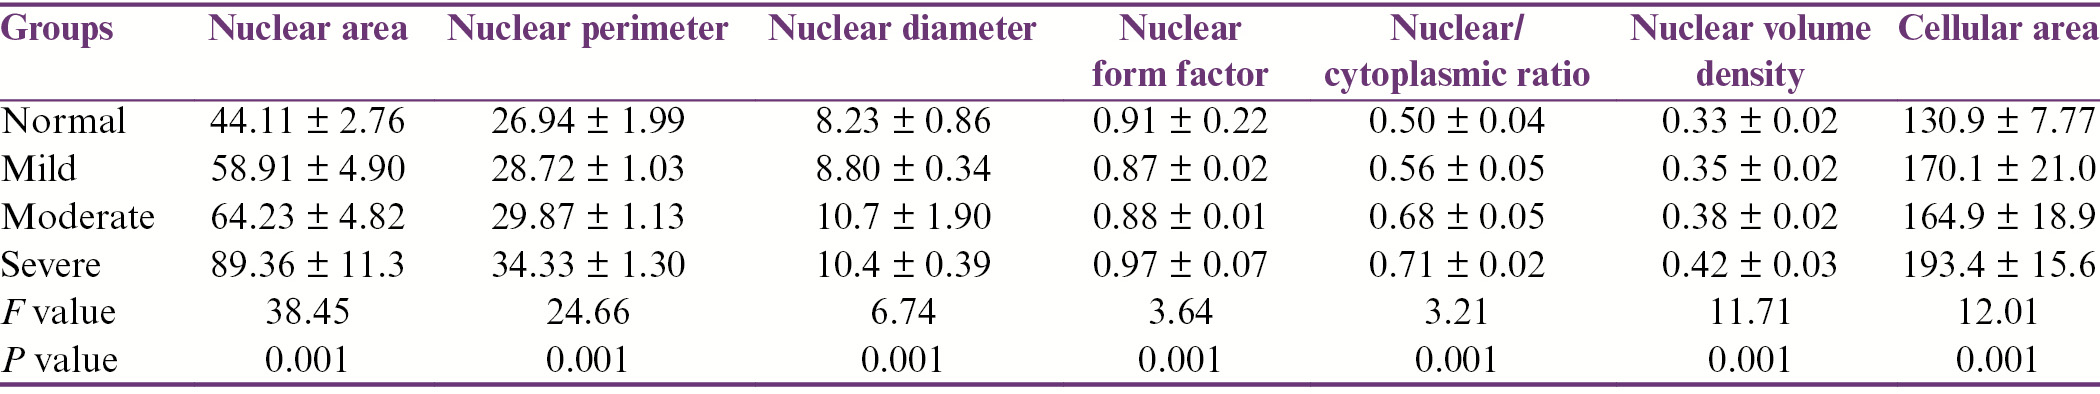 Table 2: Mean and standard deviation of various parameters in various study groups